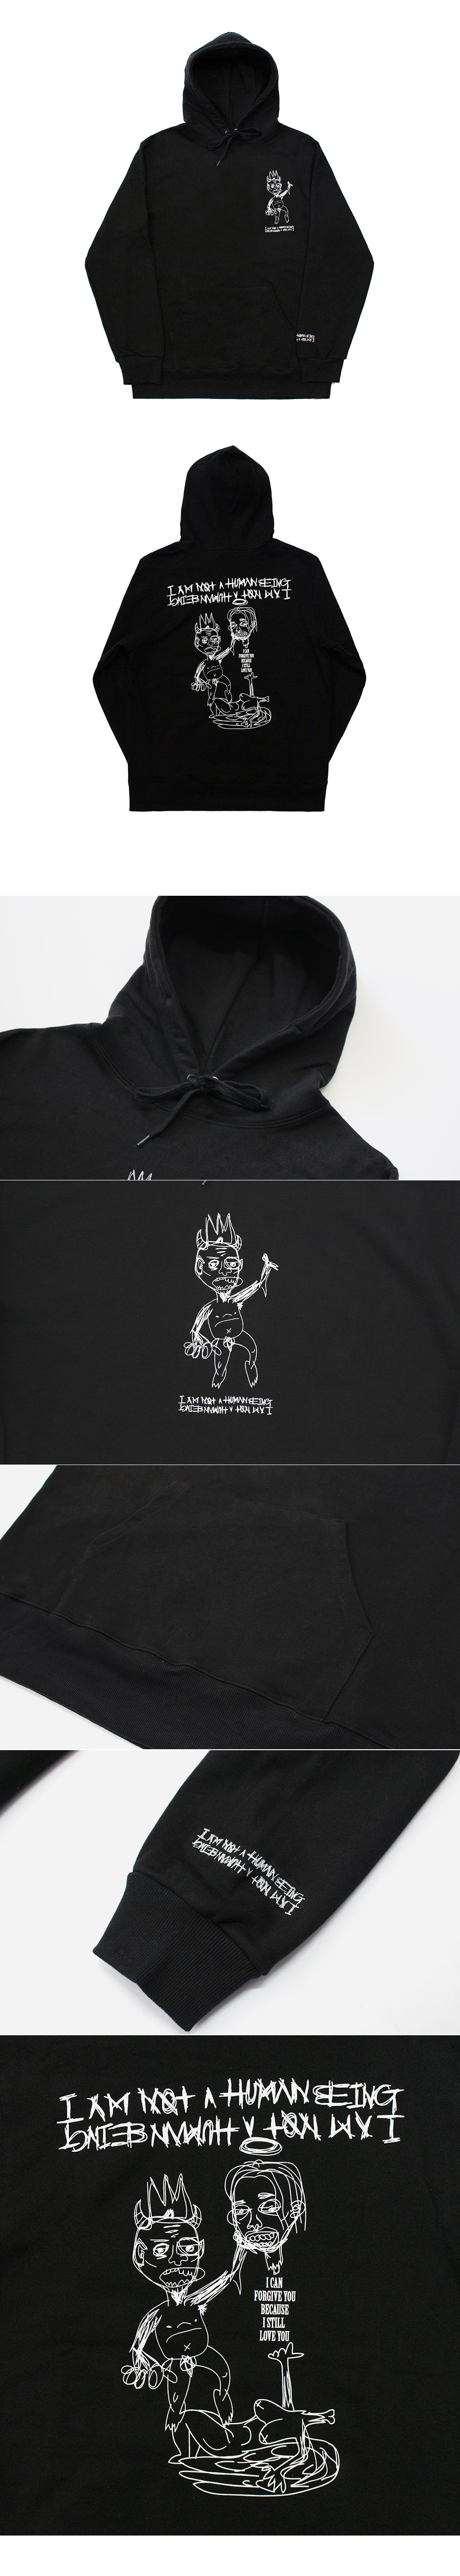 아임낫어휴먼비잉(I AM NOT A HUMAN BEING) [17FW]Still Love You Hoodie - Black